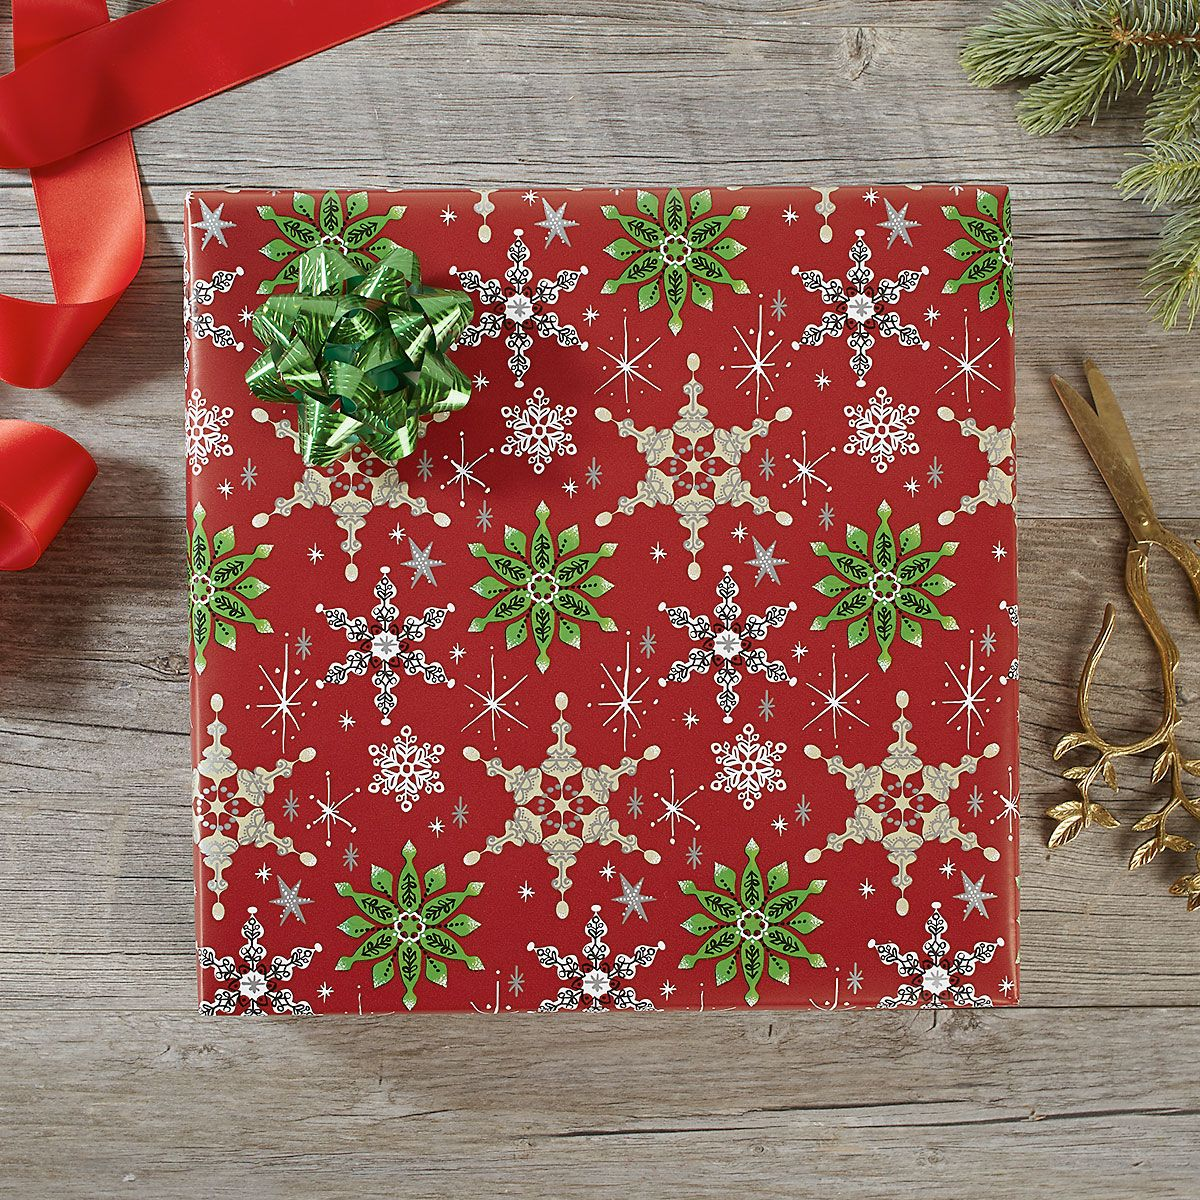 Retro Snowflakes Jumbo Rolled Gift Wrap and Labels